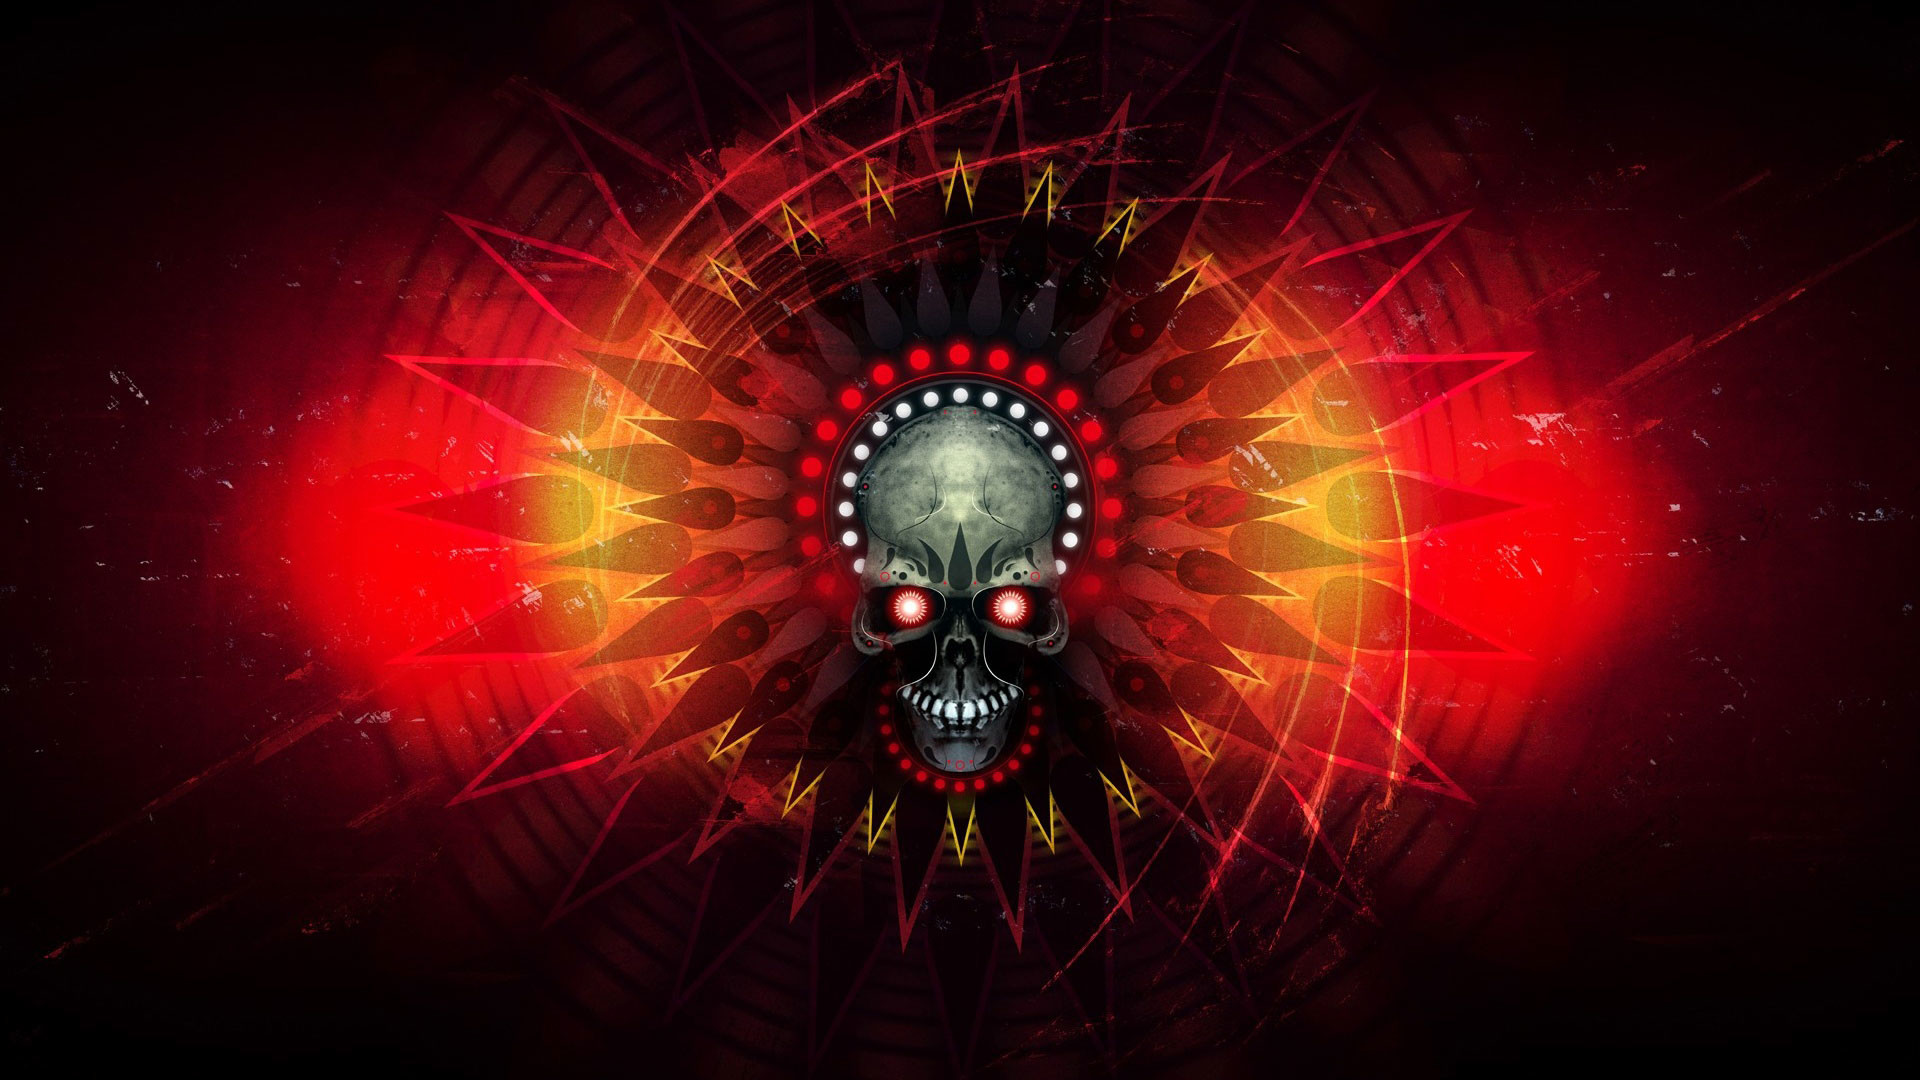 1920x1080 hd pics photos attractive skull danger red eye neon red abstract hd quality  desktop background wallpaper